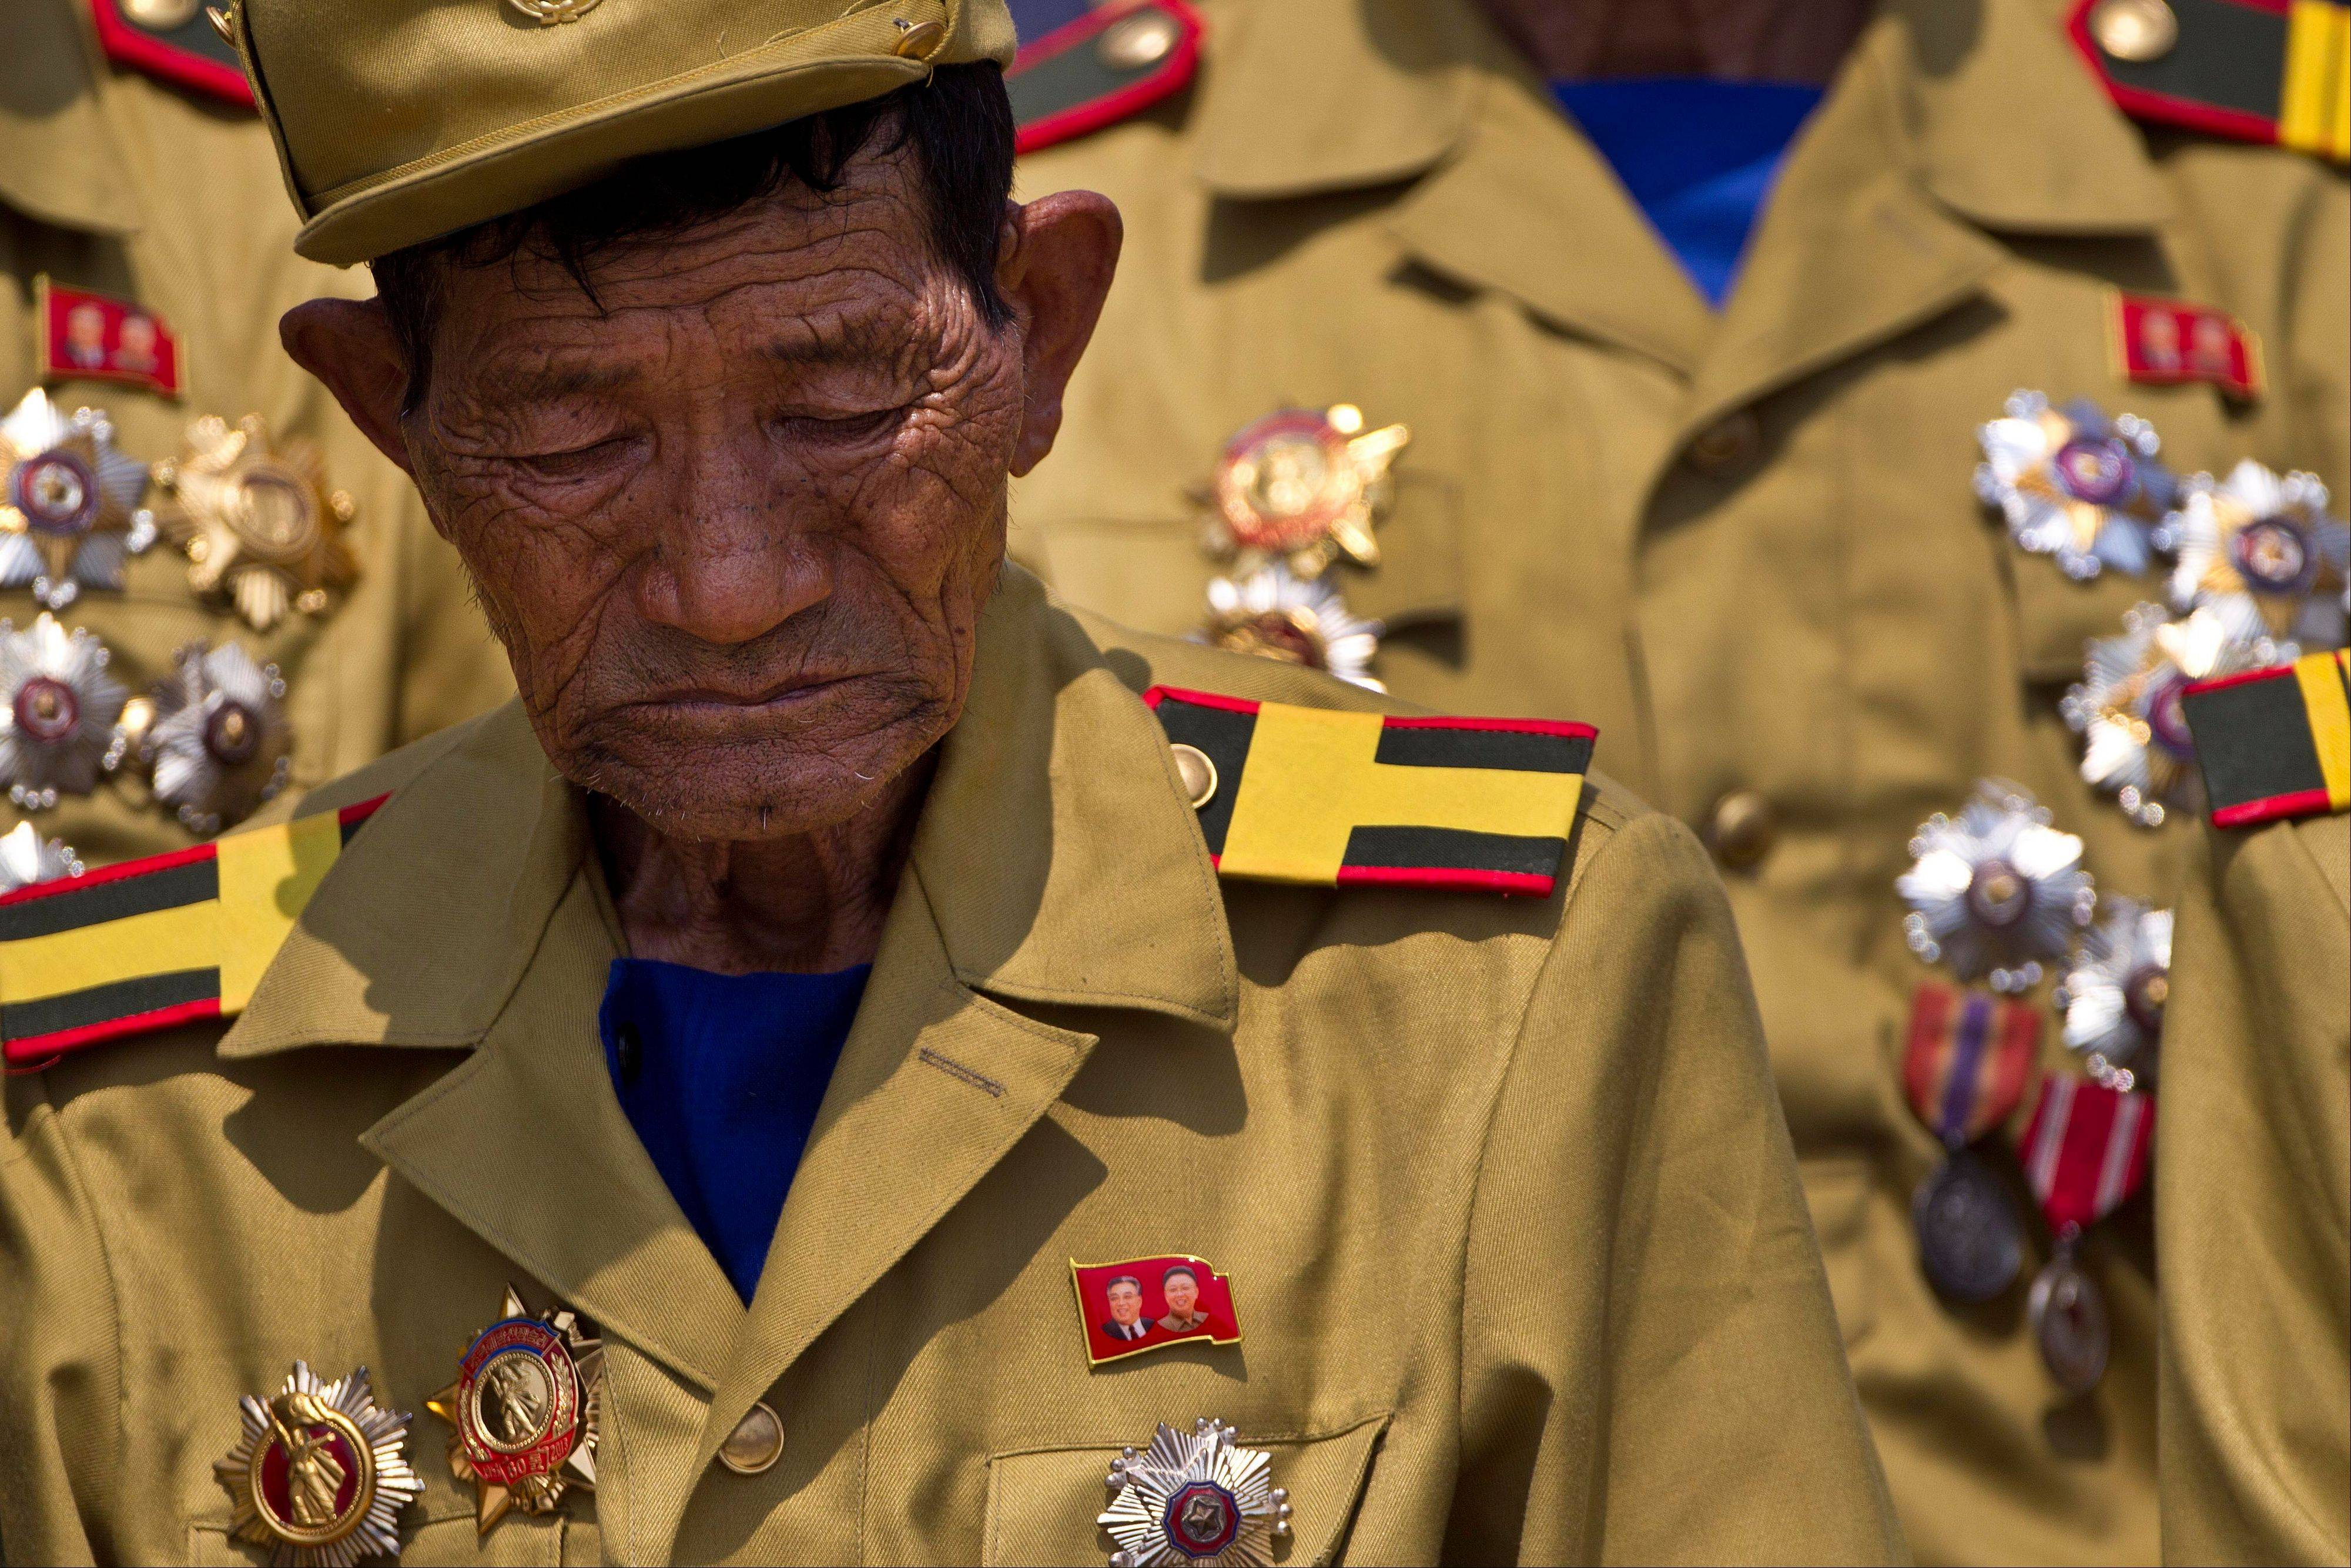 Associated PressA North Korean veteran of the Korean War bows his head during a mass military parade on Kim Il Sung Square in Pyongyang to mark the 60th anniversary of the Korean War armistice, Saturday, July 27.